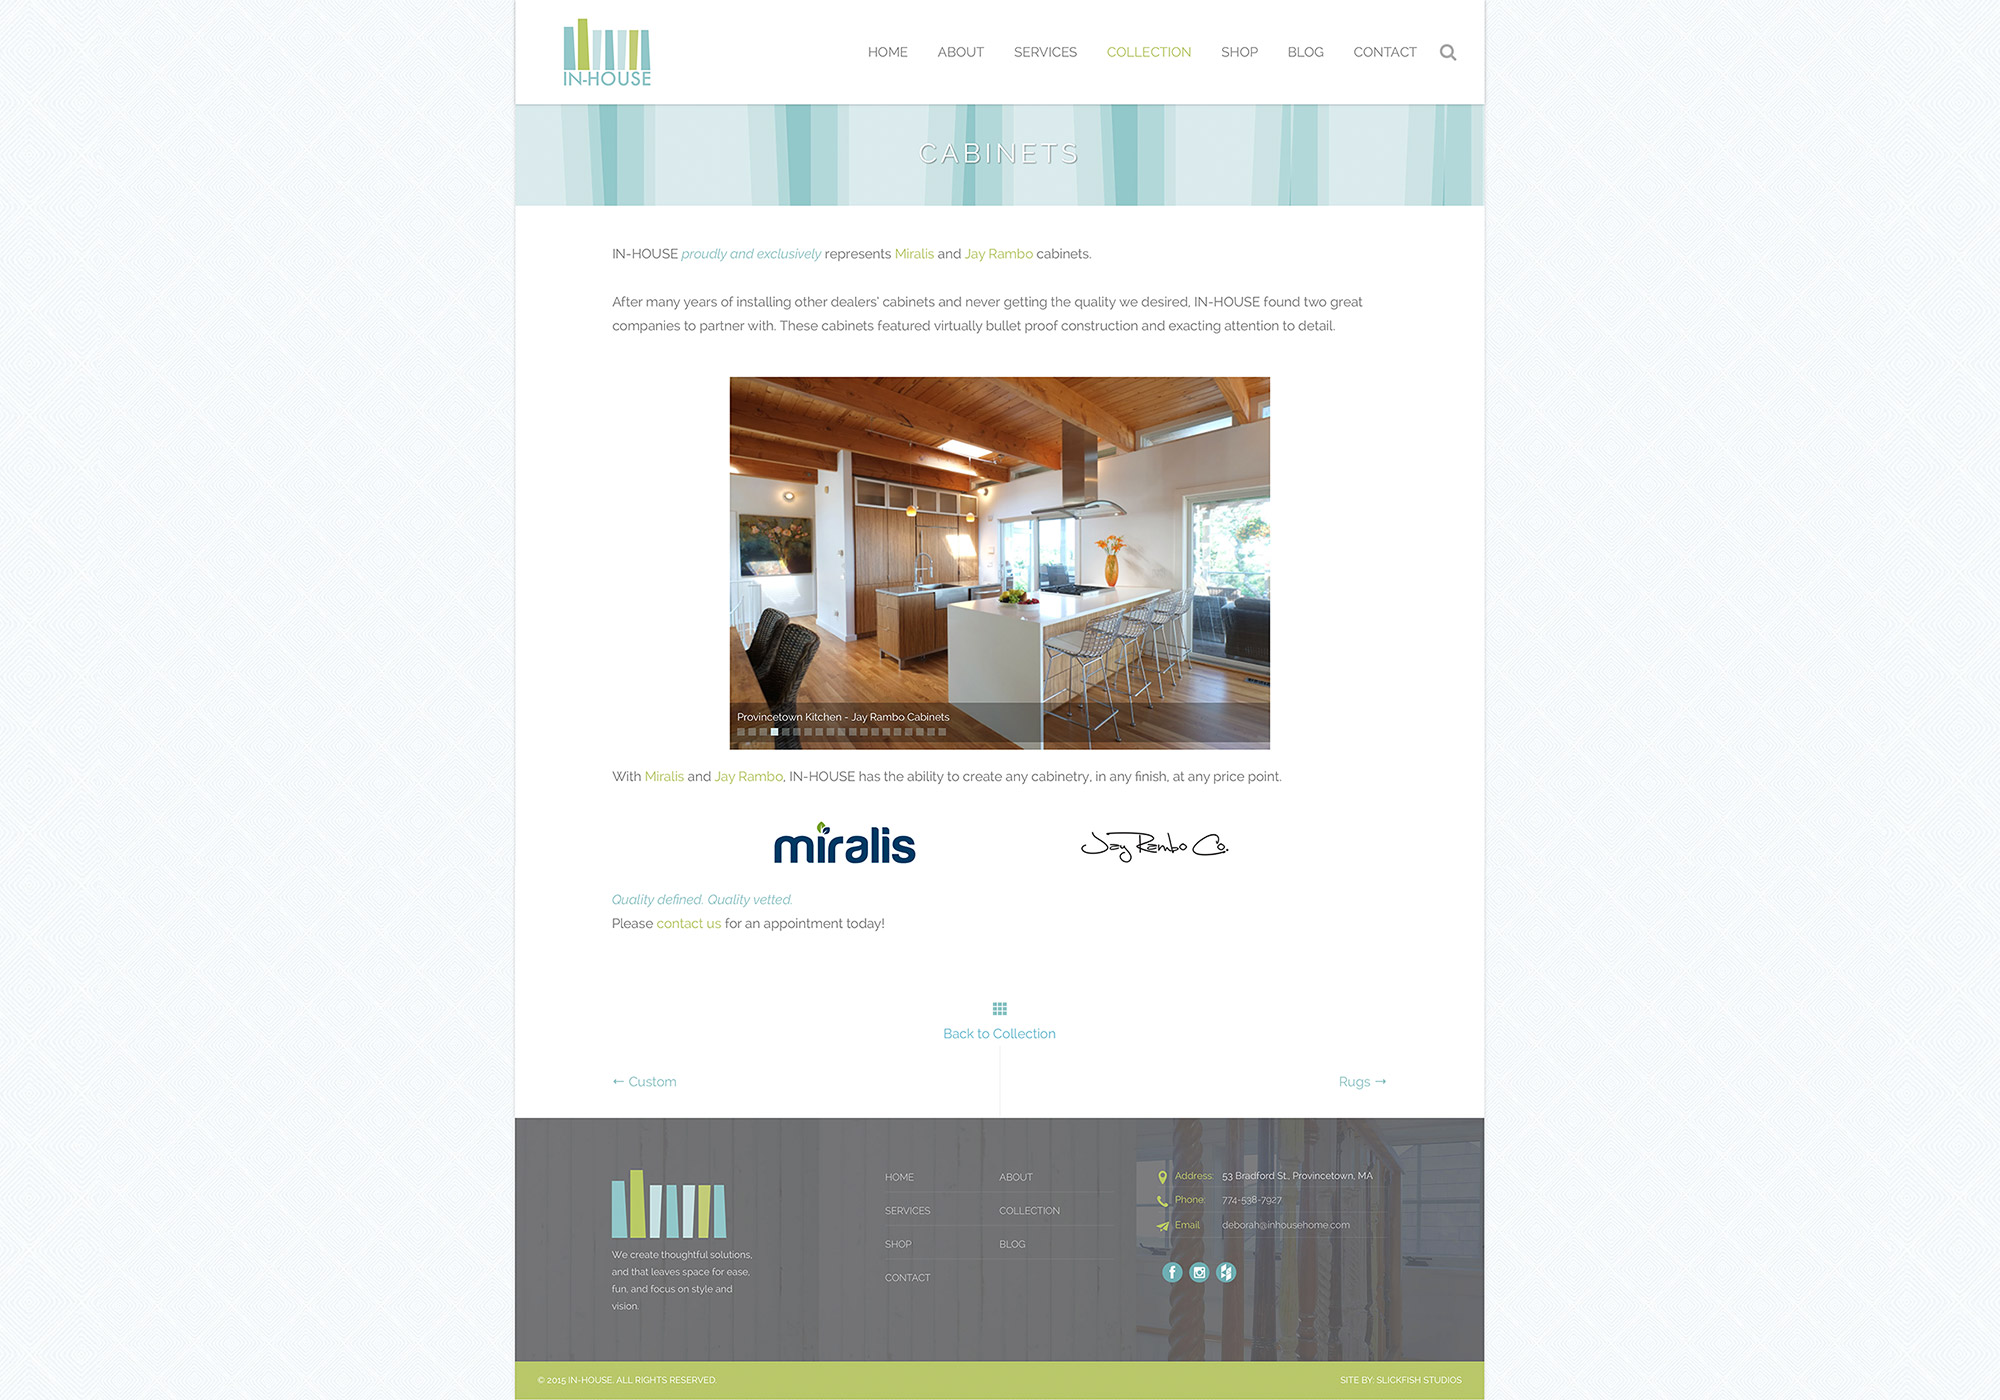 A screenshot of cabinets Collection slideshow and page on the In-House website designed by Maine web design company SlickFish.